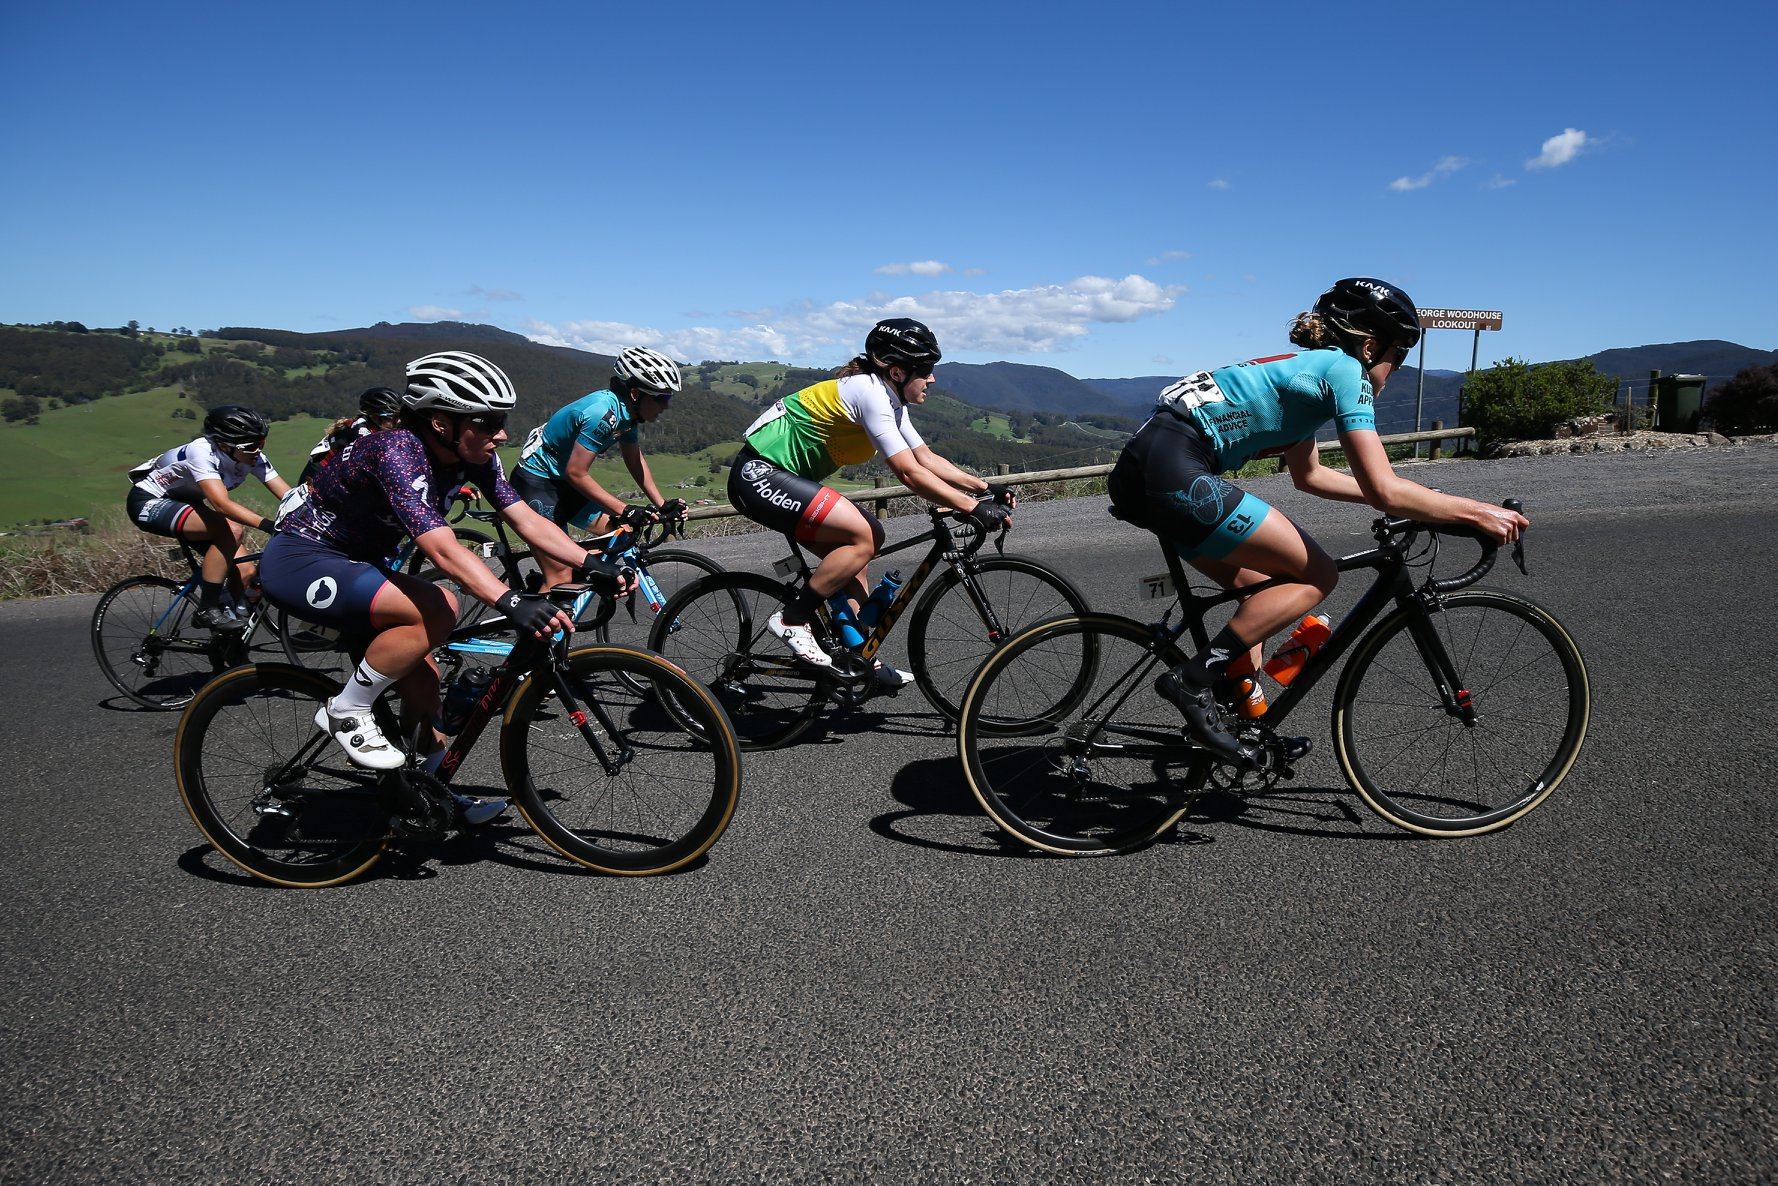 Lizzie and Kmac in the first chase group on Gunns Plains. Photo credit: Con Chronis Photography.